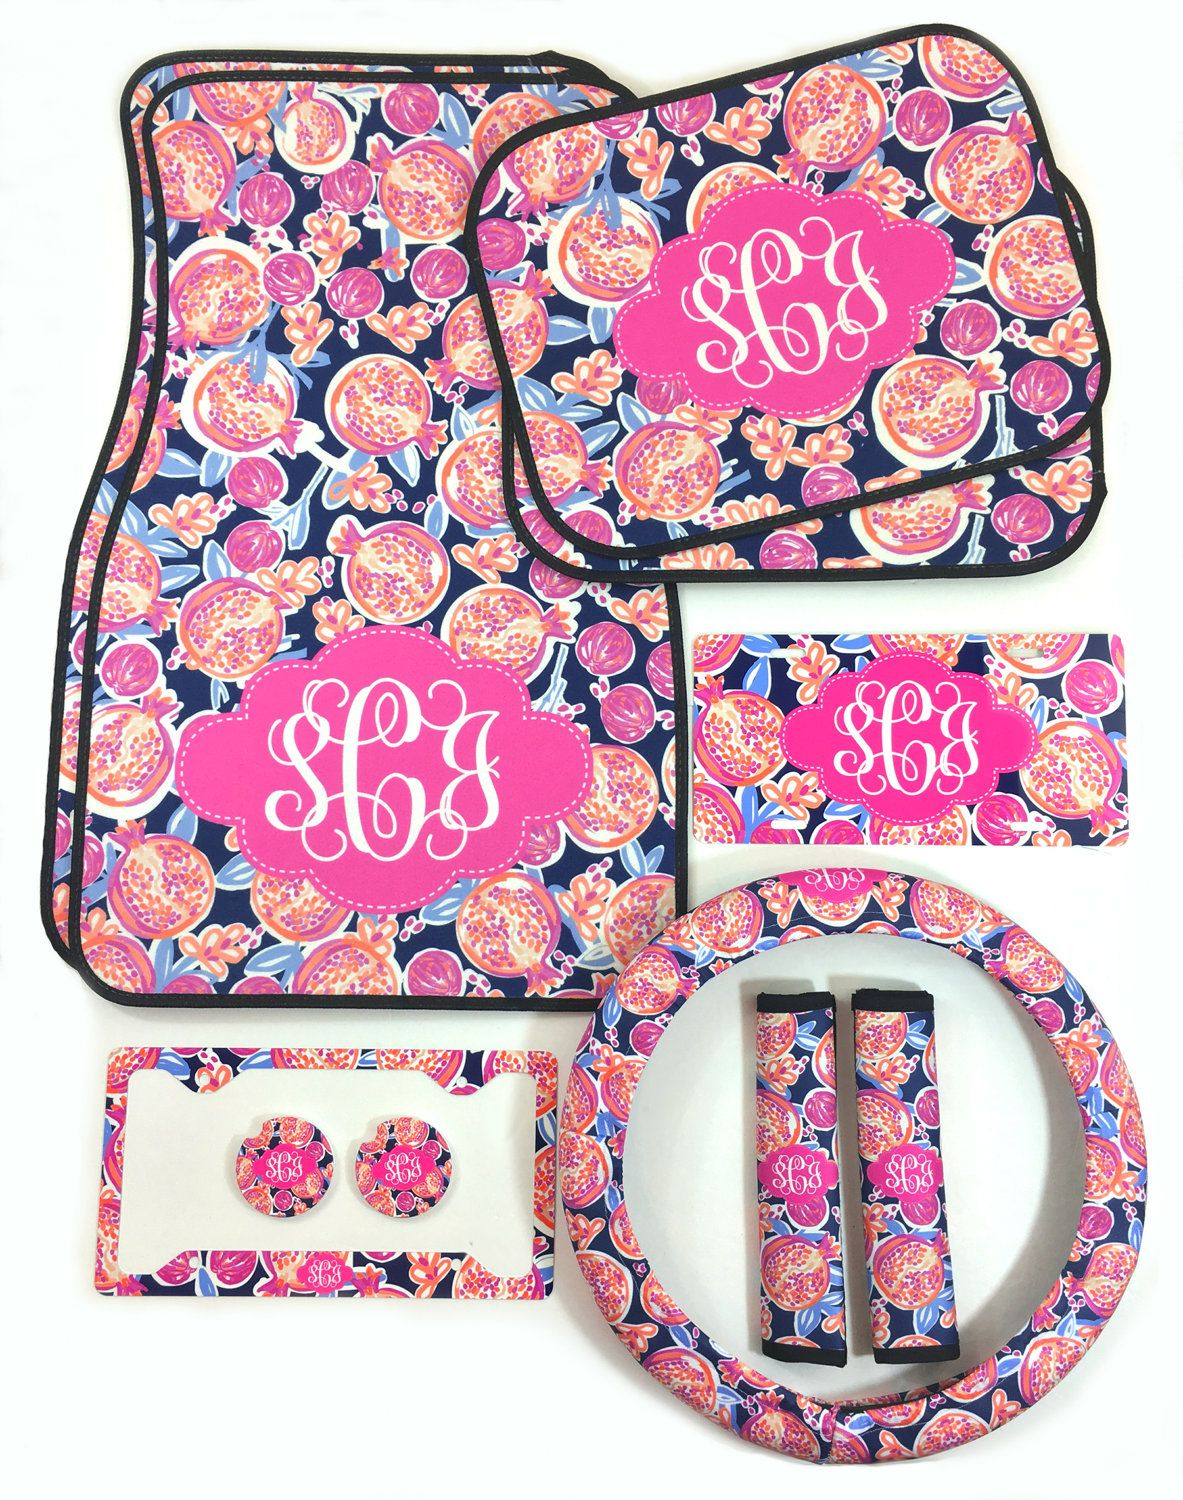 monogrammed car accessories set car floor mats steering wheel cover seat belt covers license. Black Bedroom Furniture Sets. Home Design Ideas